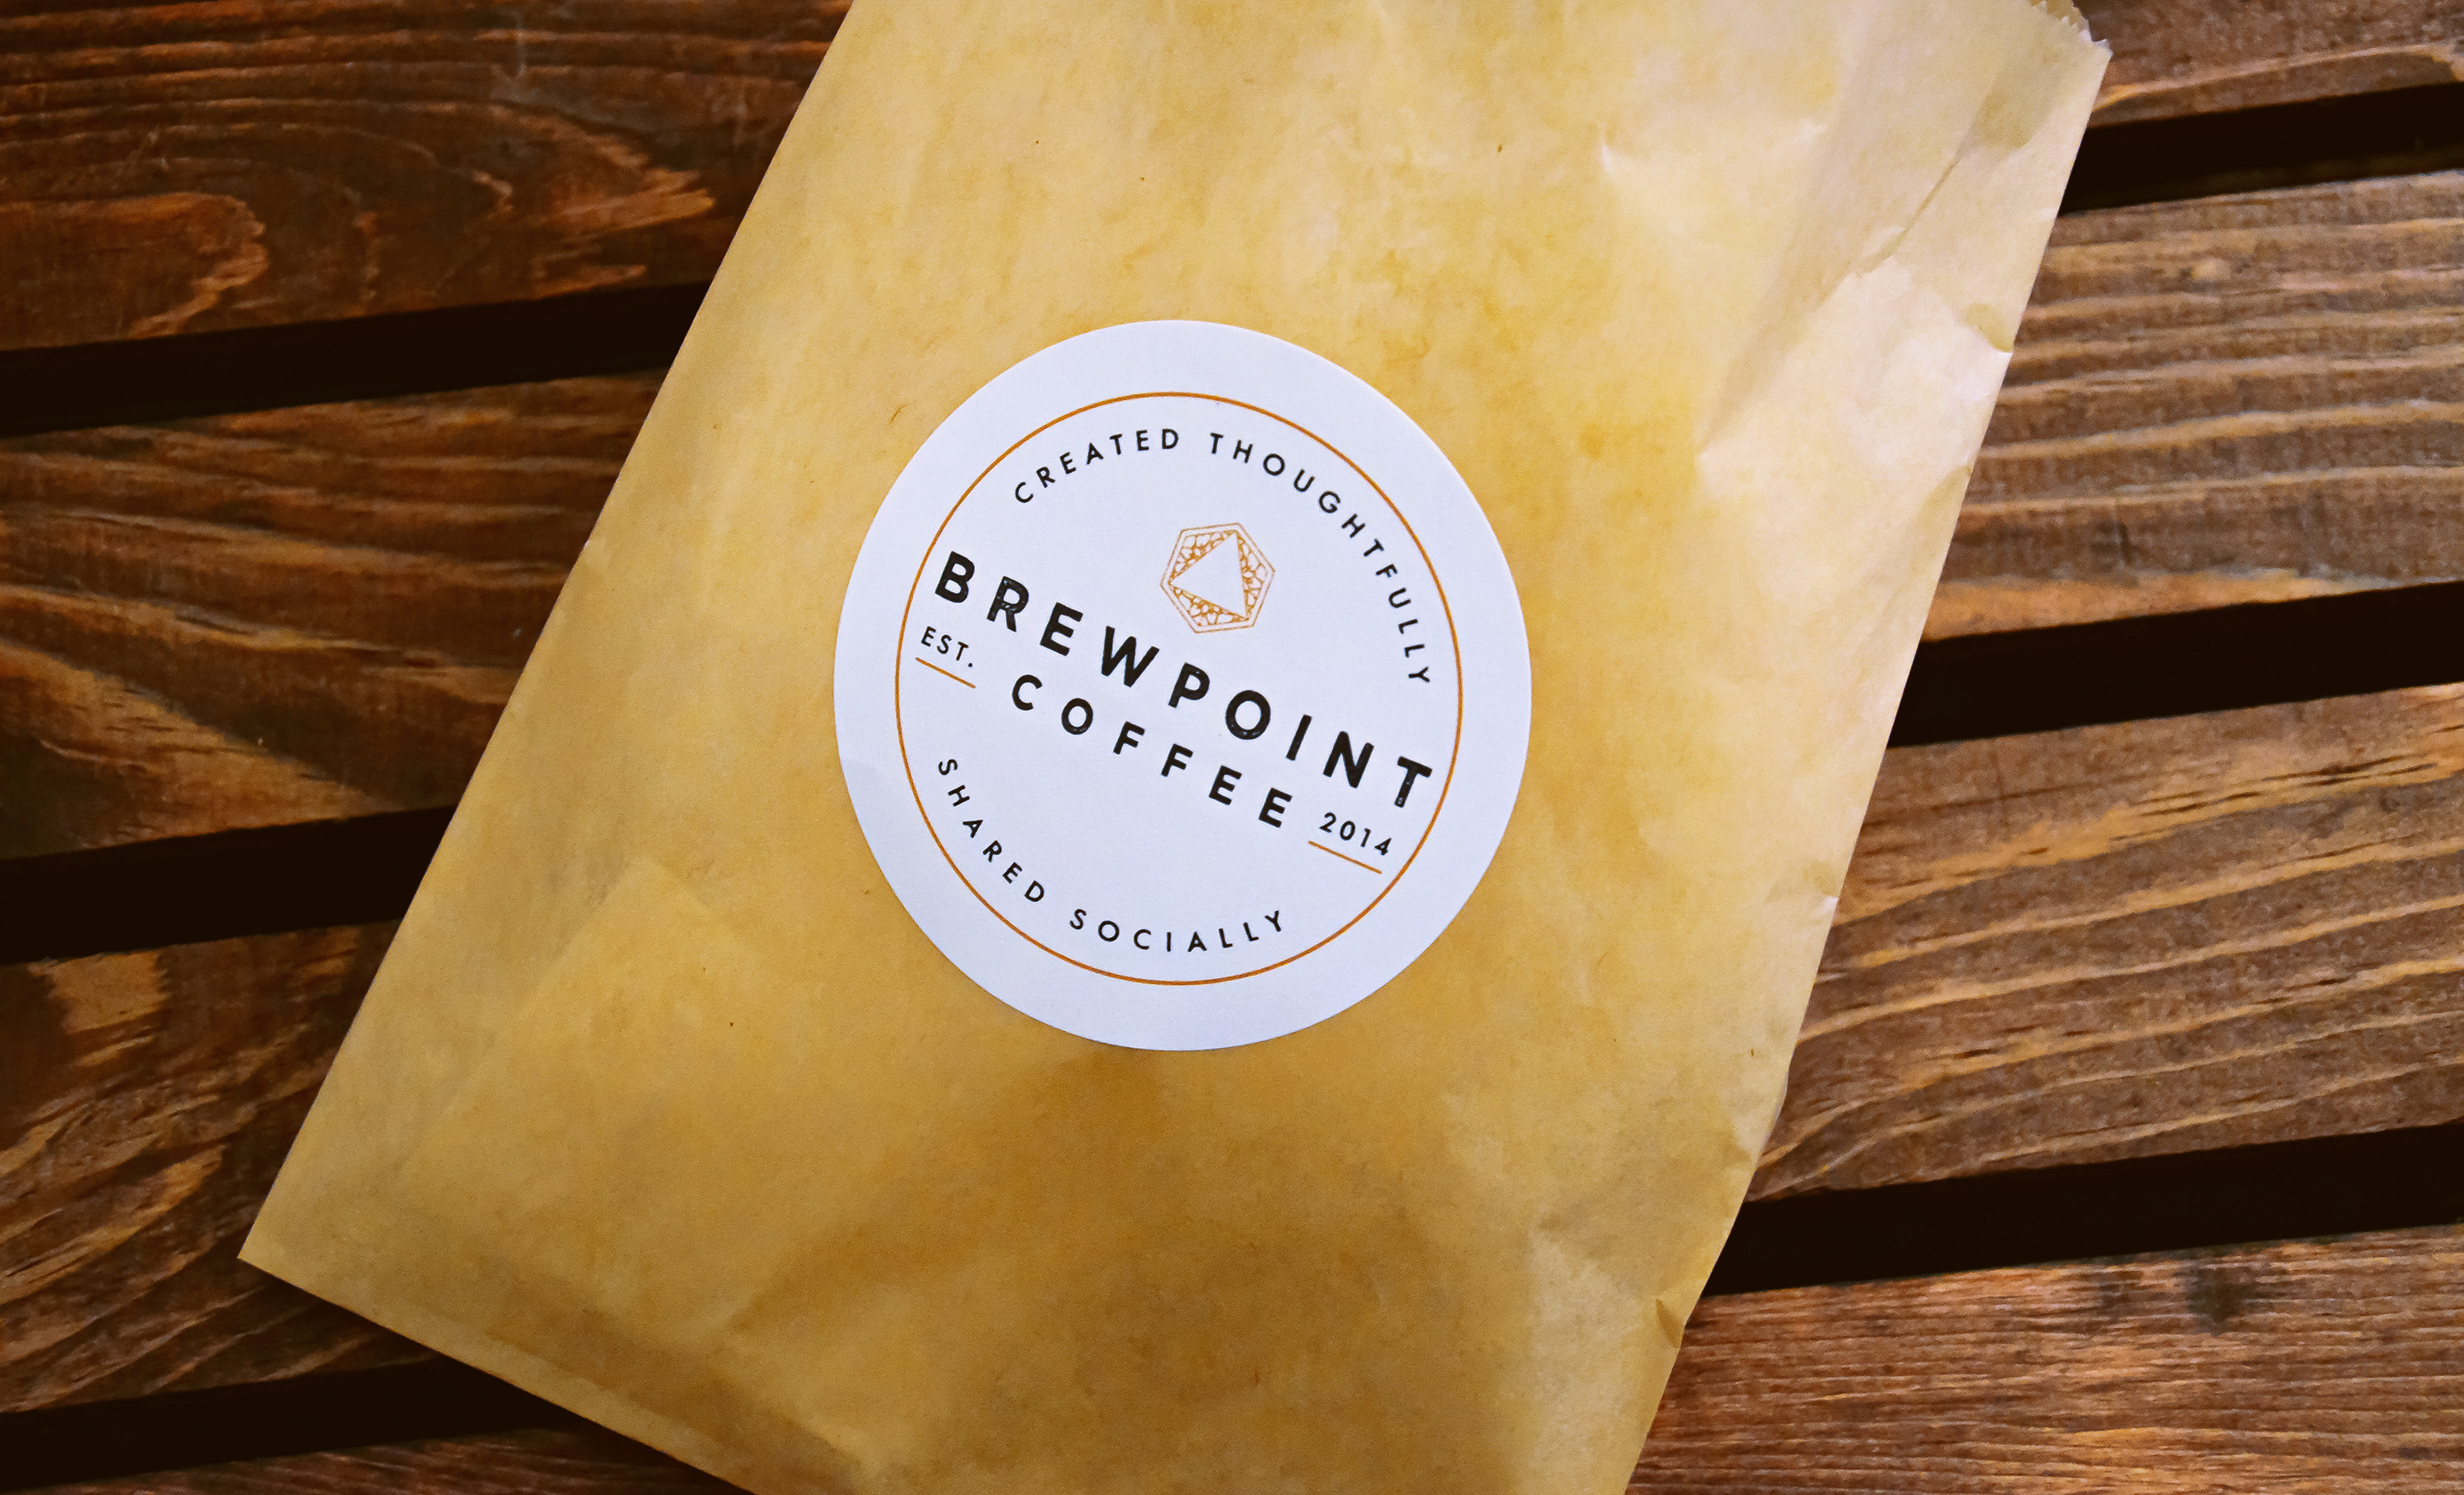 Brewpoint Coffee's logo stamp on a pastry bag.